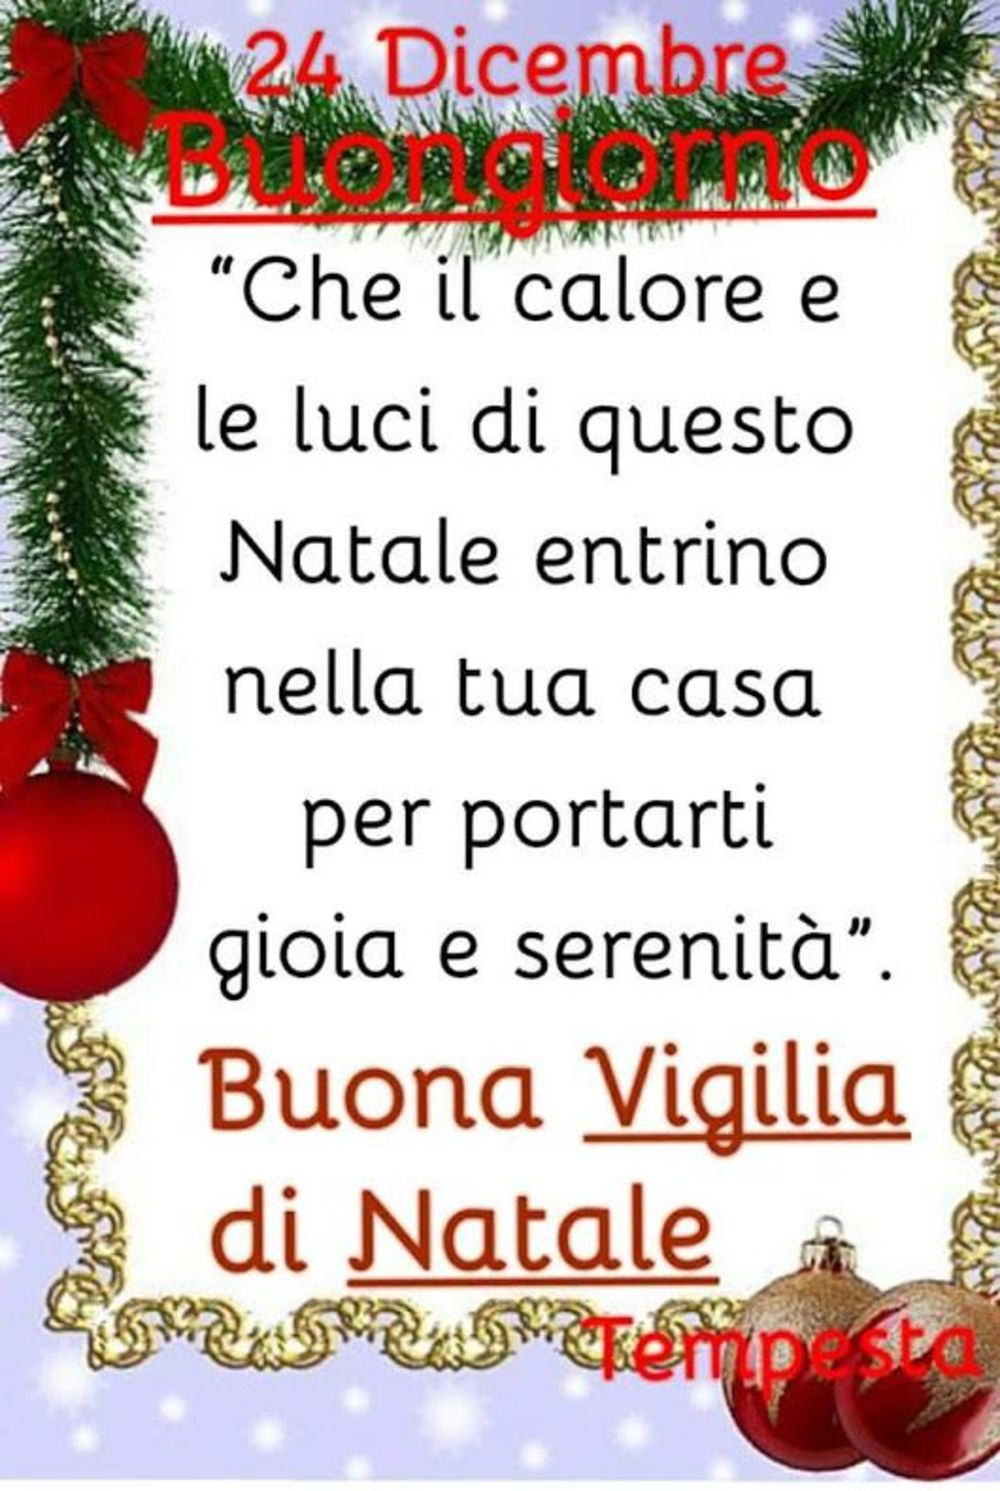 Frasi Religiose Per Natale.Belle Frasi Per Vigilia Di Natale Gesutiama It